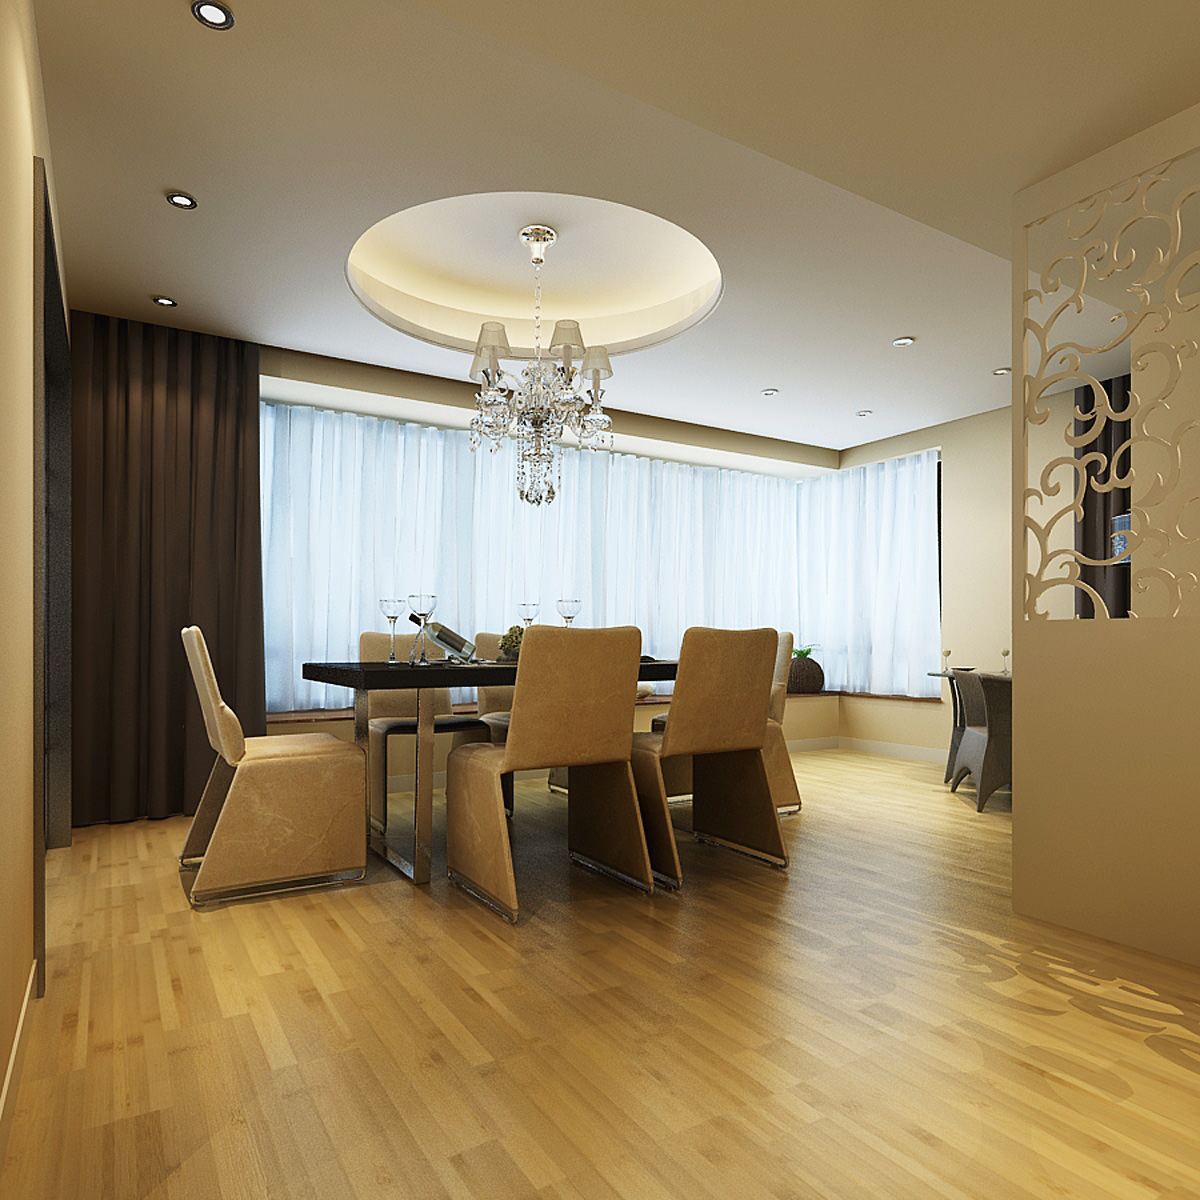 Photoreal luxurious flat interior 3d model max for Flat interior